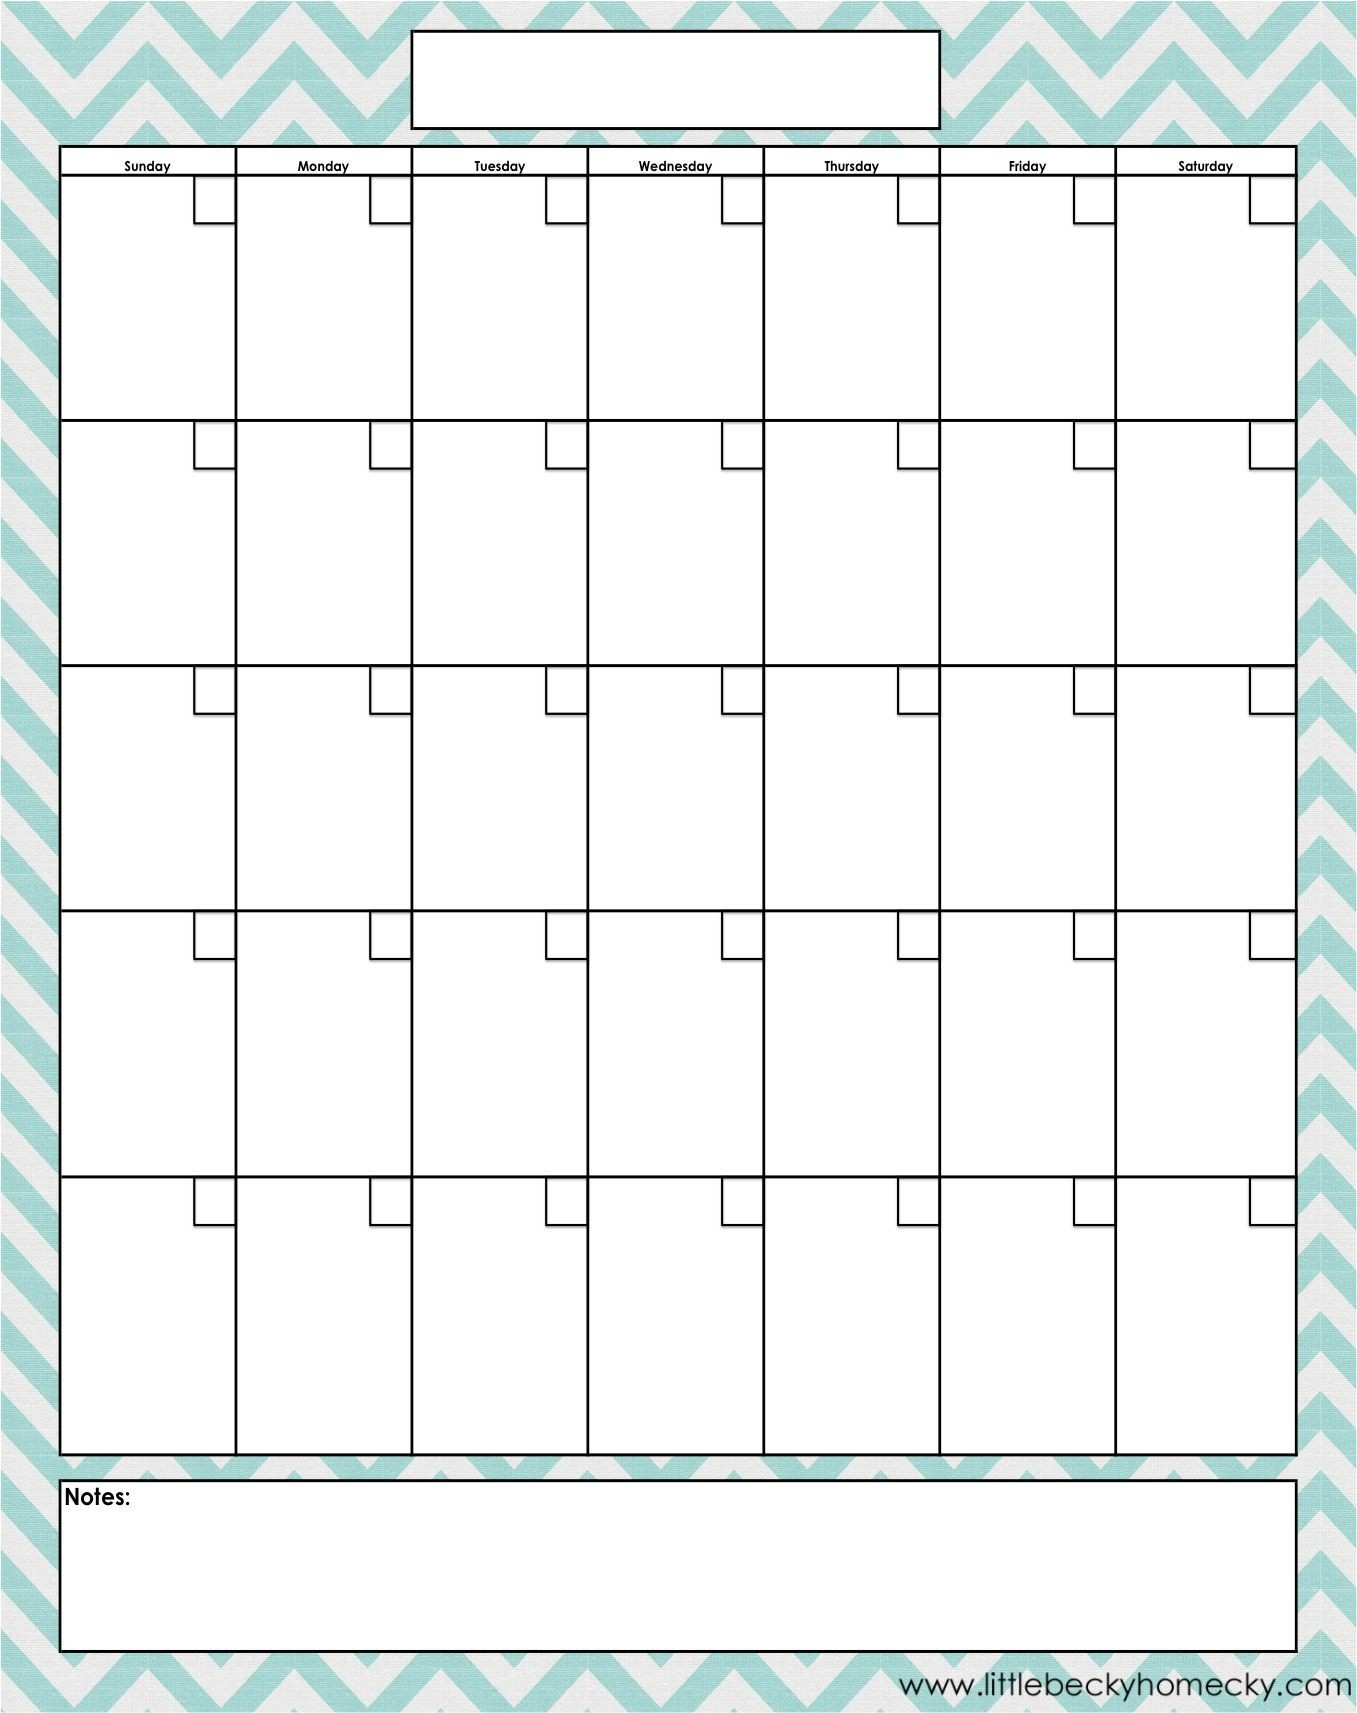 Blank Fill In Calendar | Calendar Template Printable Monthly Yearly-Free Fill In Printable Calendars